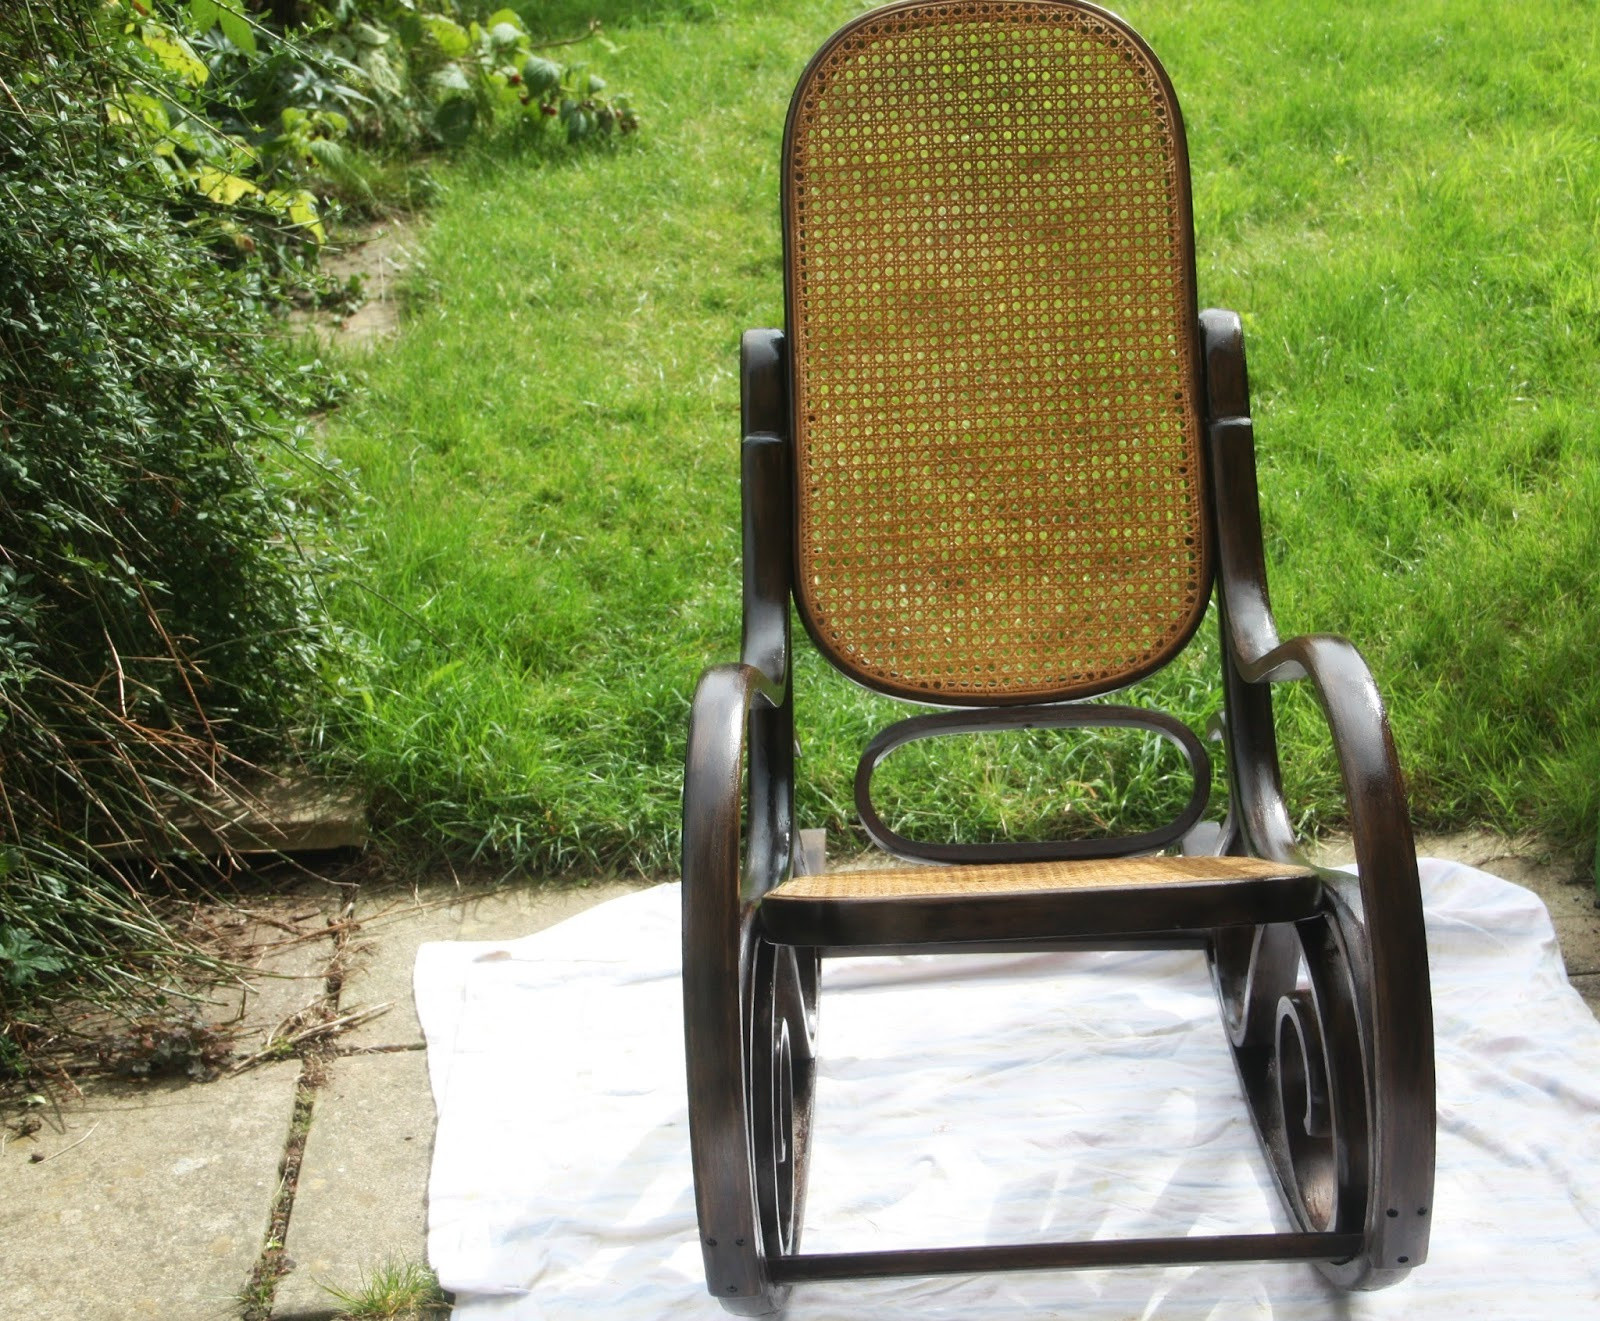 Superb A Quirky Lifestyle Summer Projects Diy Antique Chair Machost Co Dining Chair Design Ideas Machostcouk